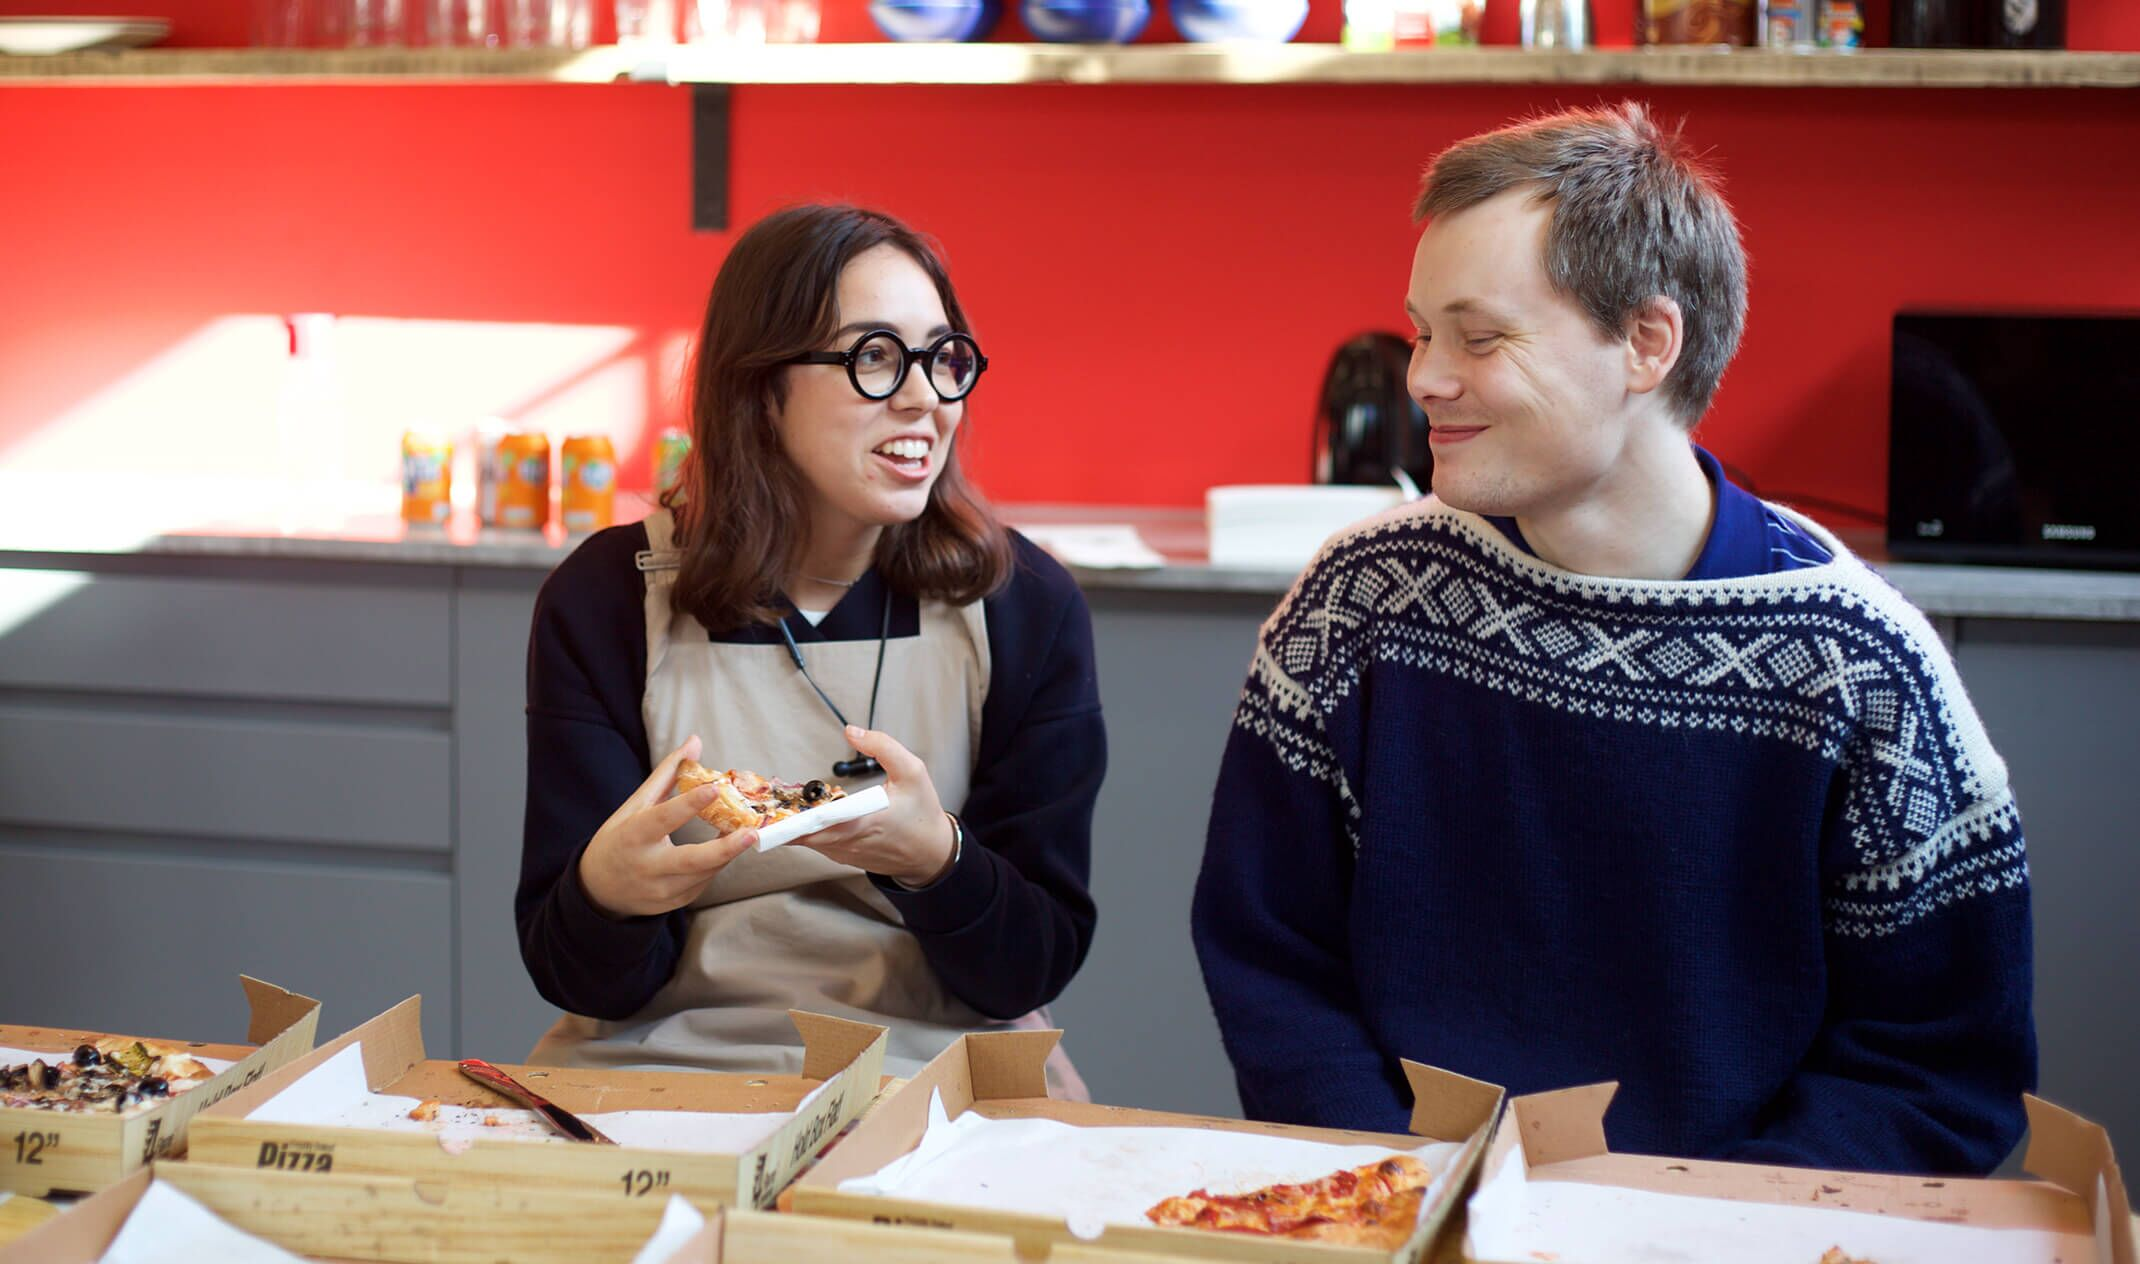 Two colleagues chatting while eating lunch